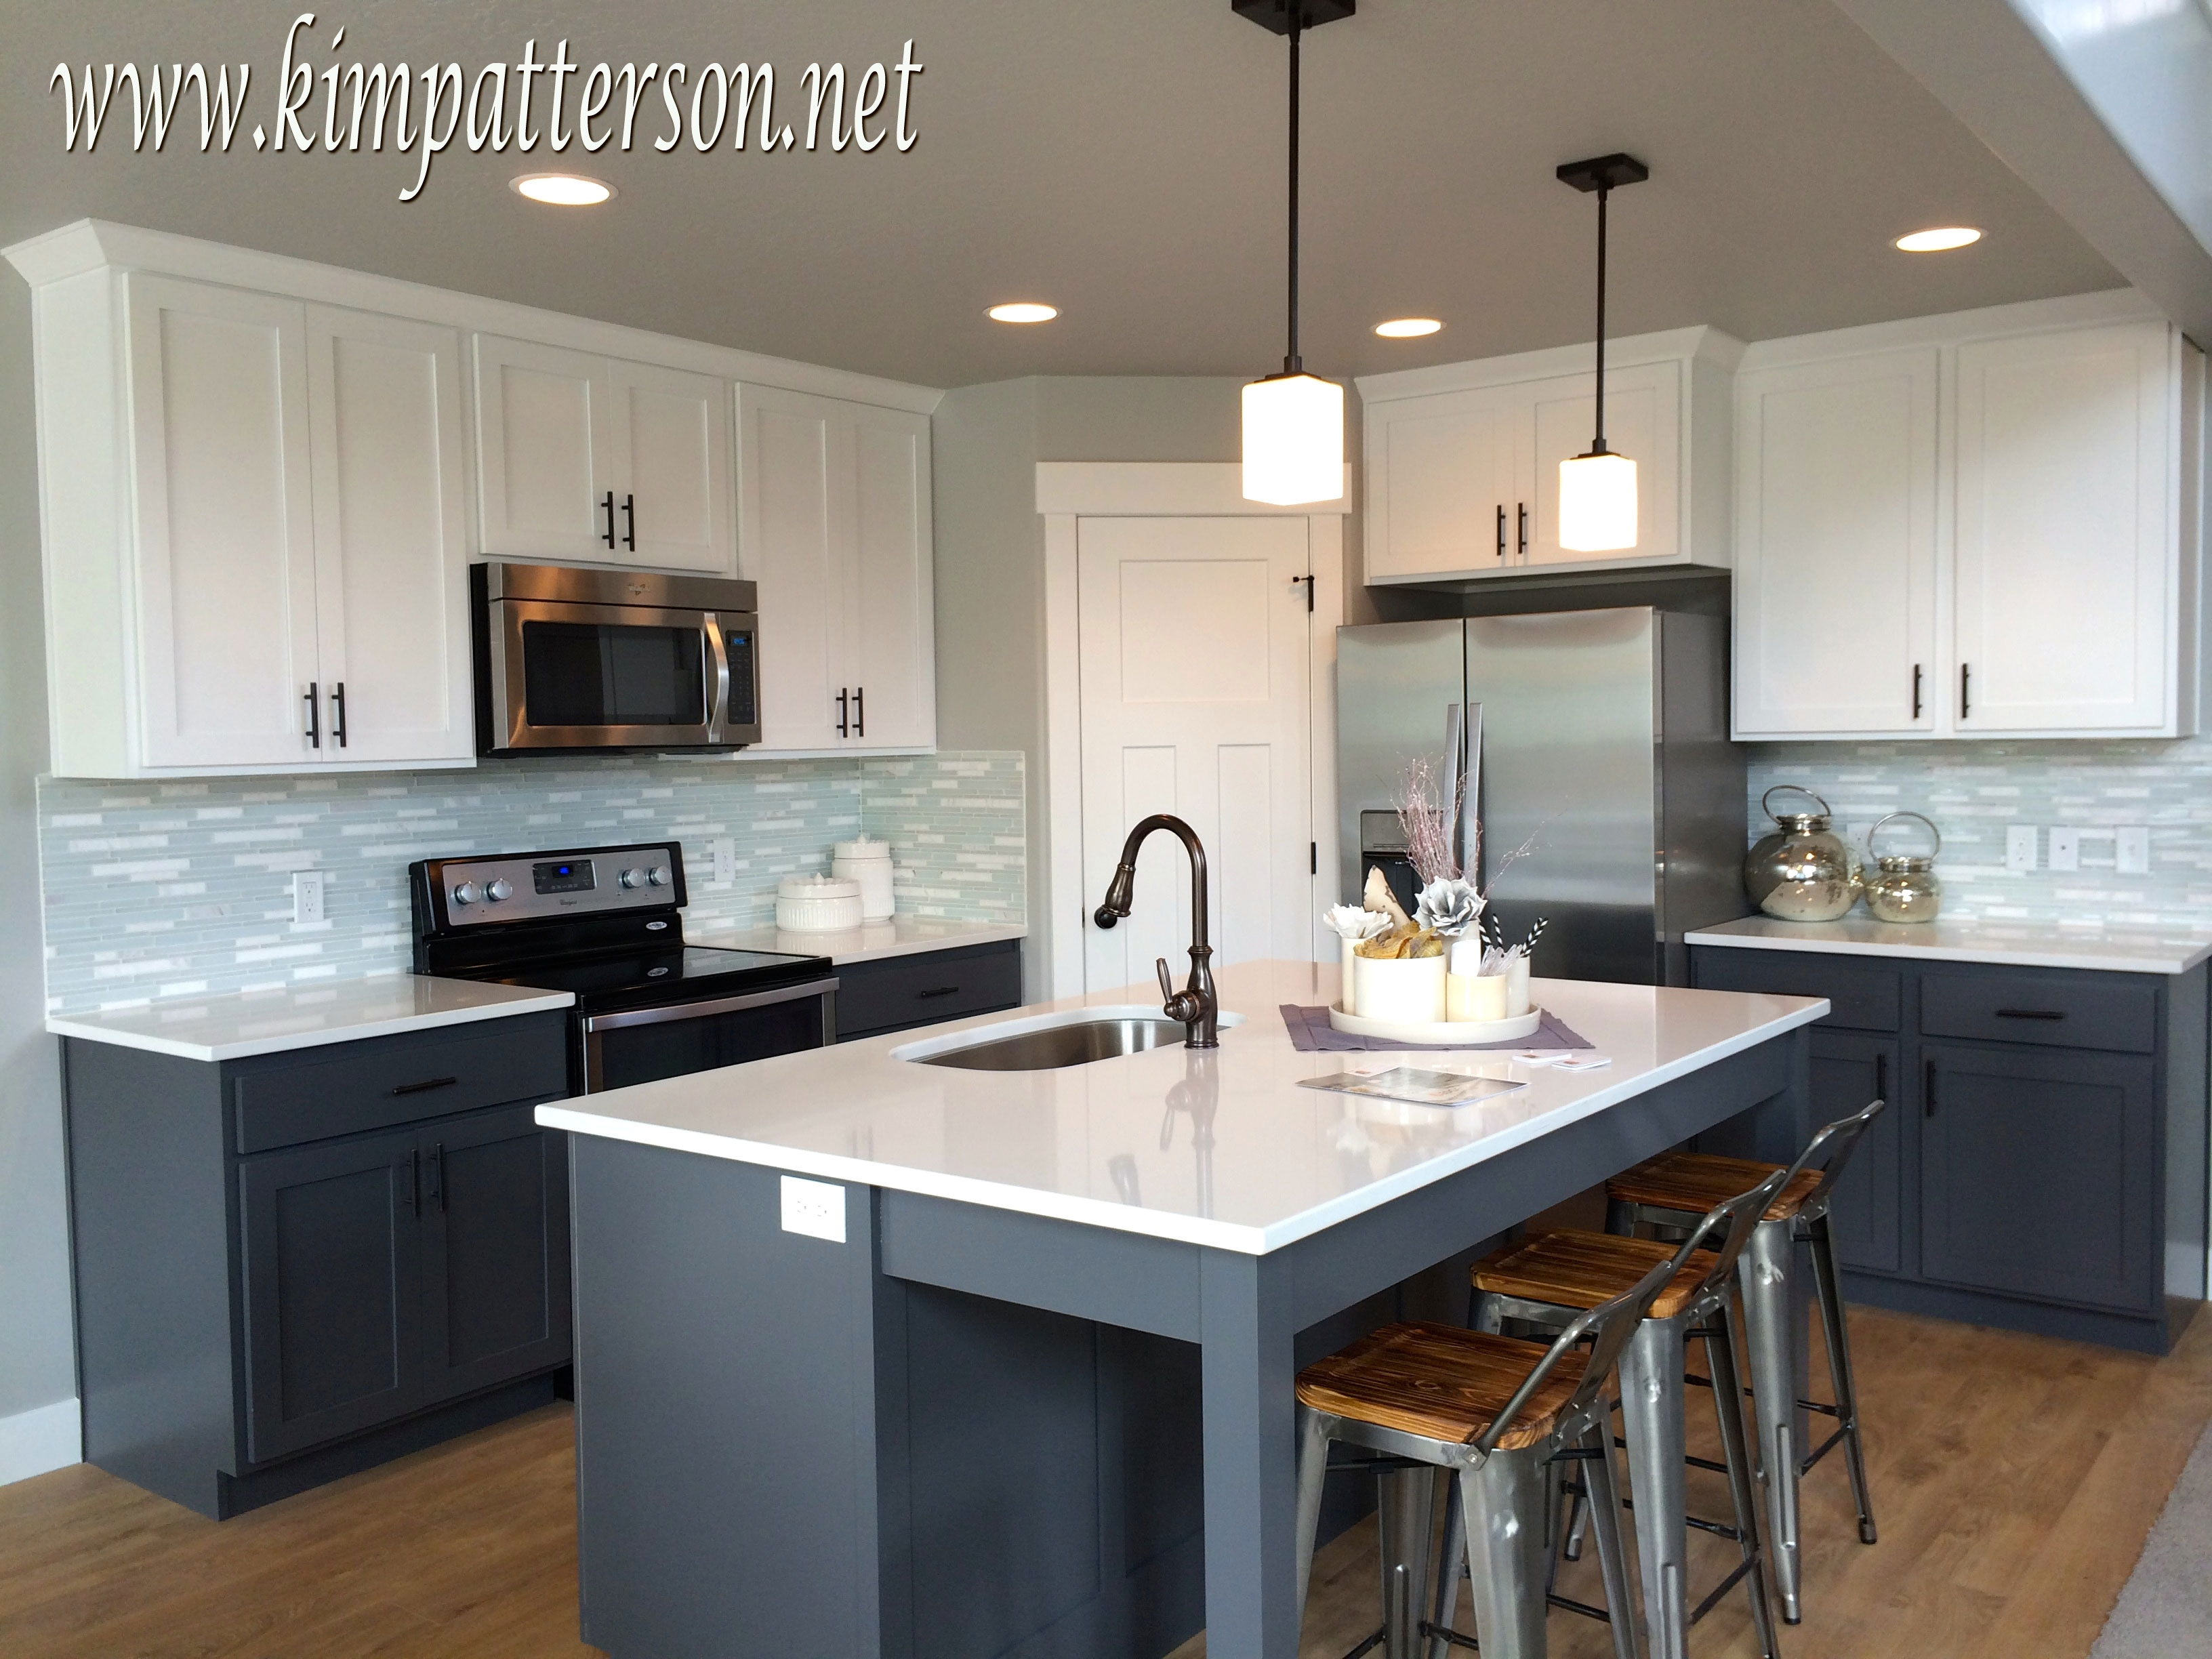 Kitchen Cabinets Upper And Lower Different Colors